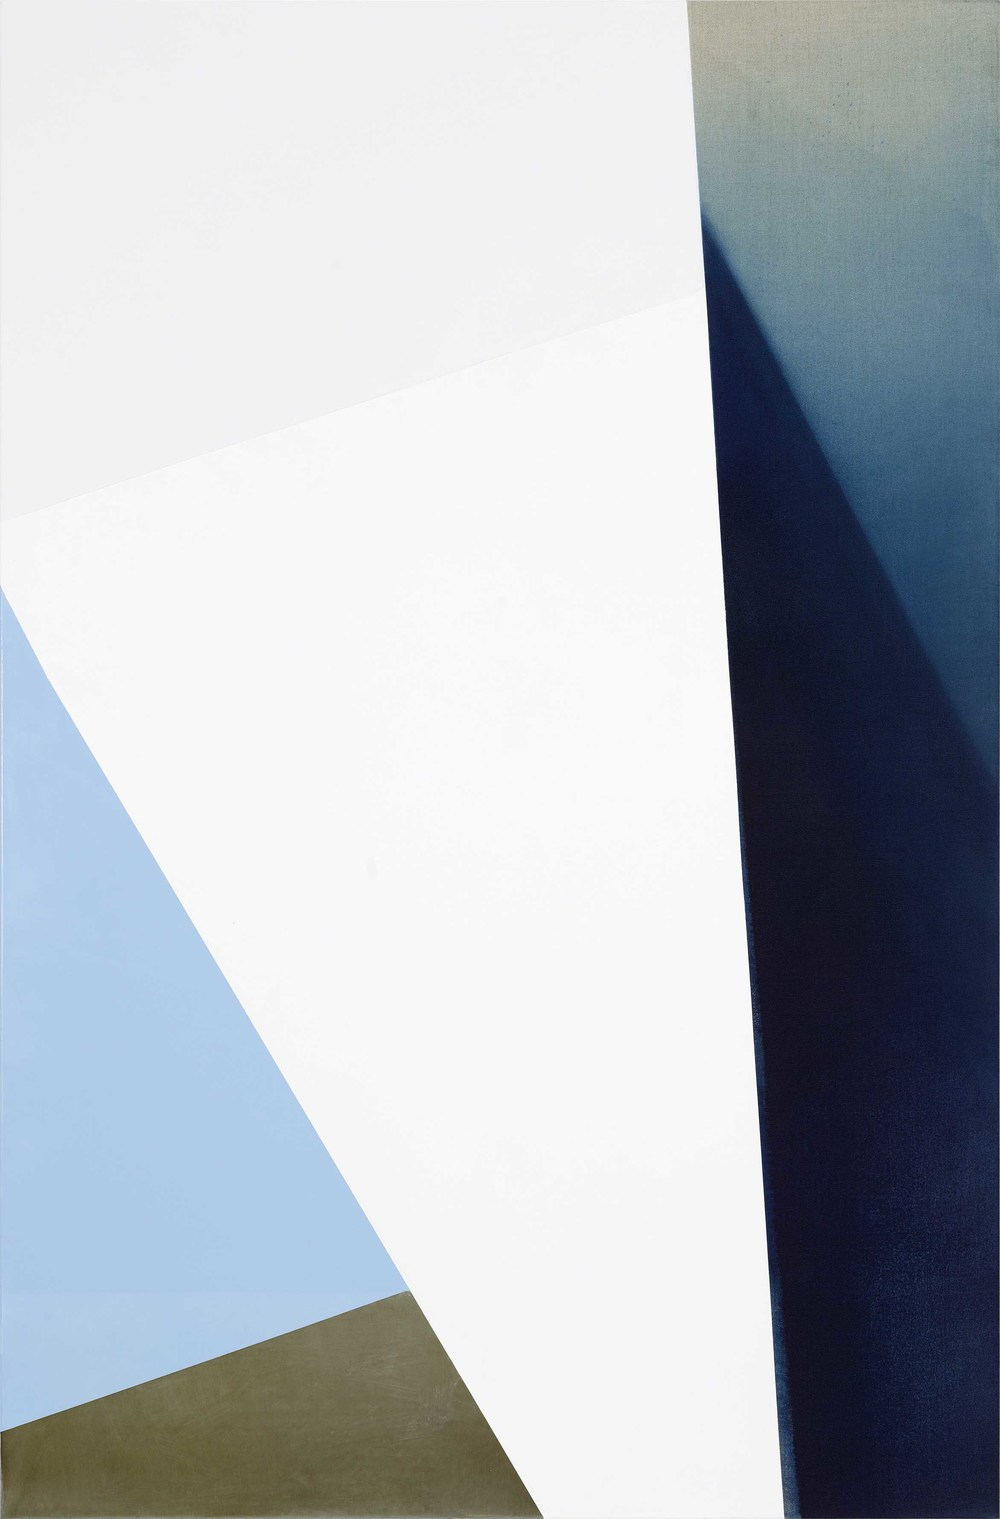 Untitled, 2015, oil on canvas, 230 x 150 cm